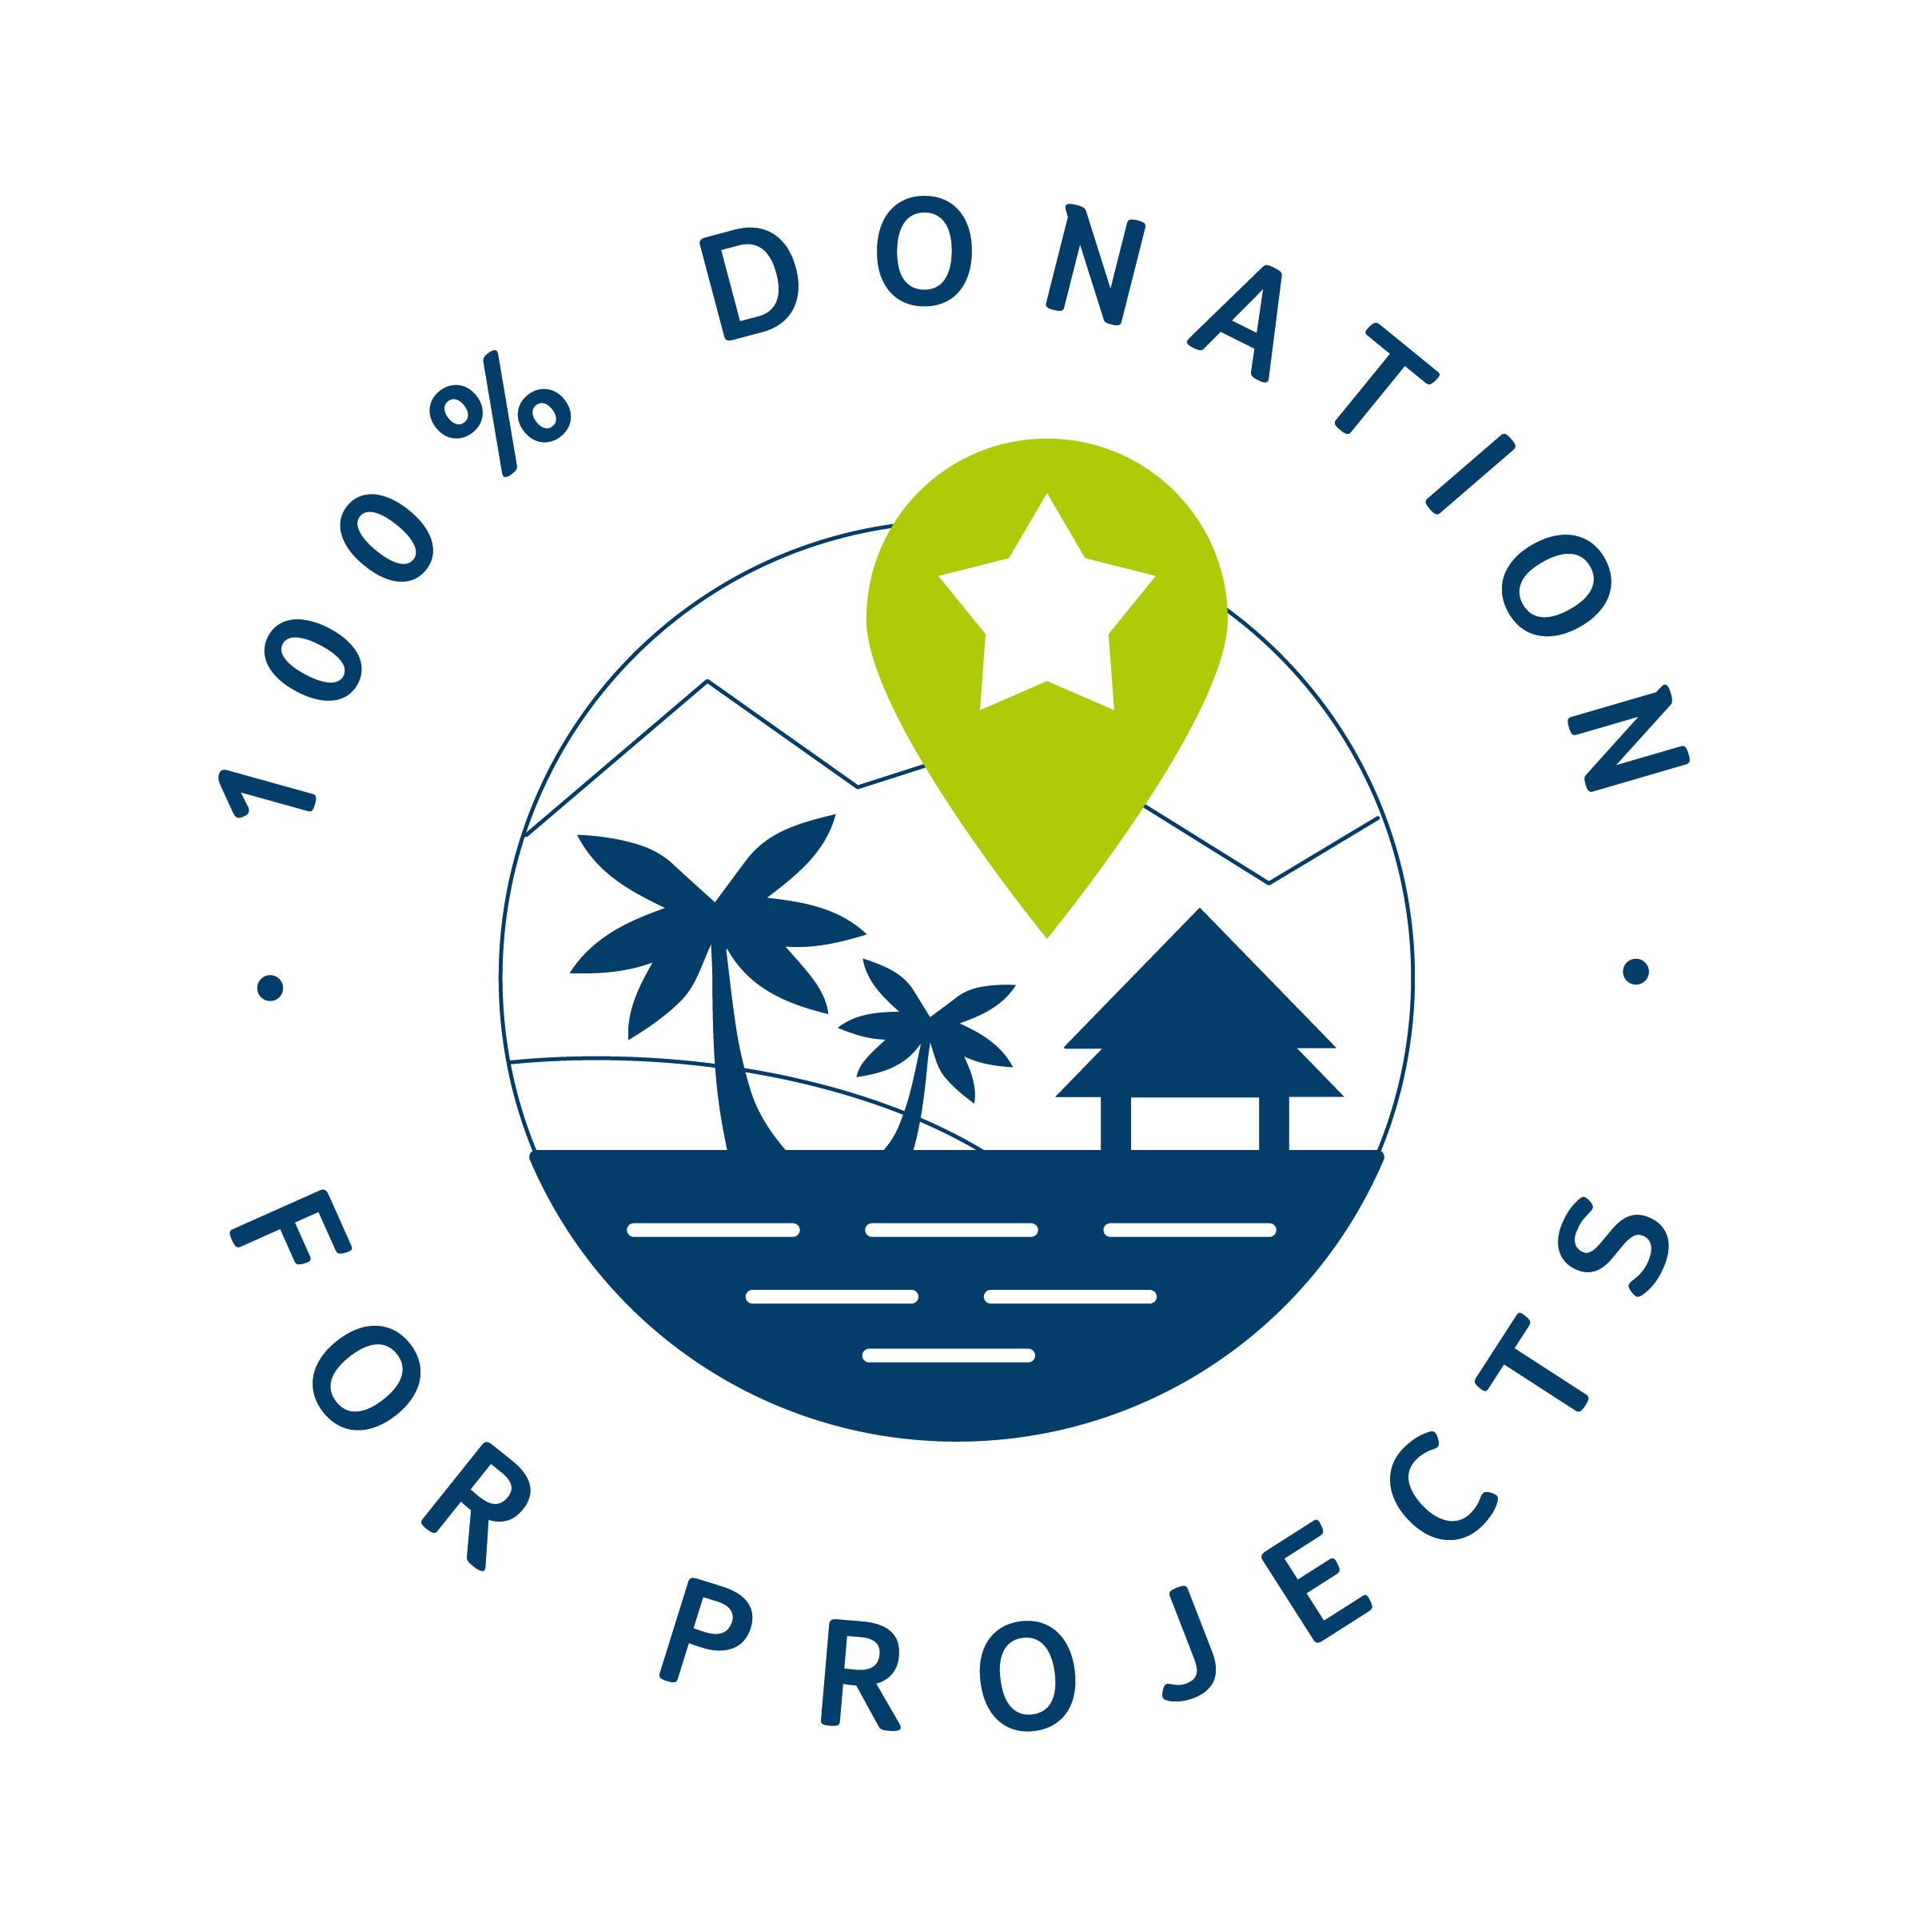 TCF 100 donation for projects LOGO fc_aug17